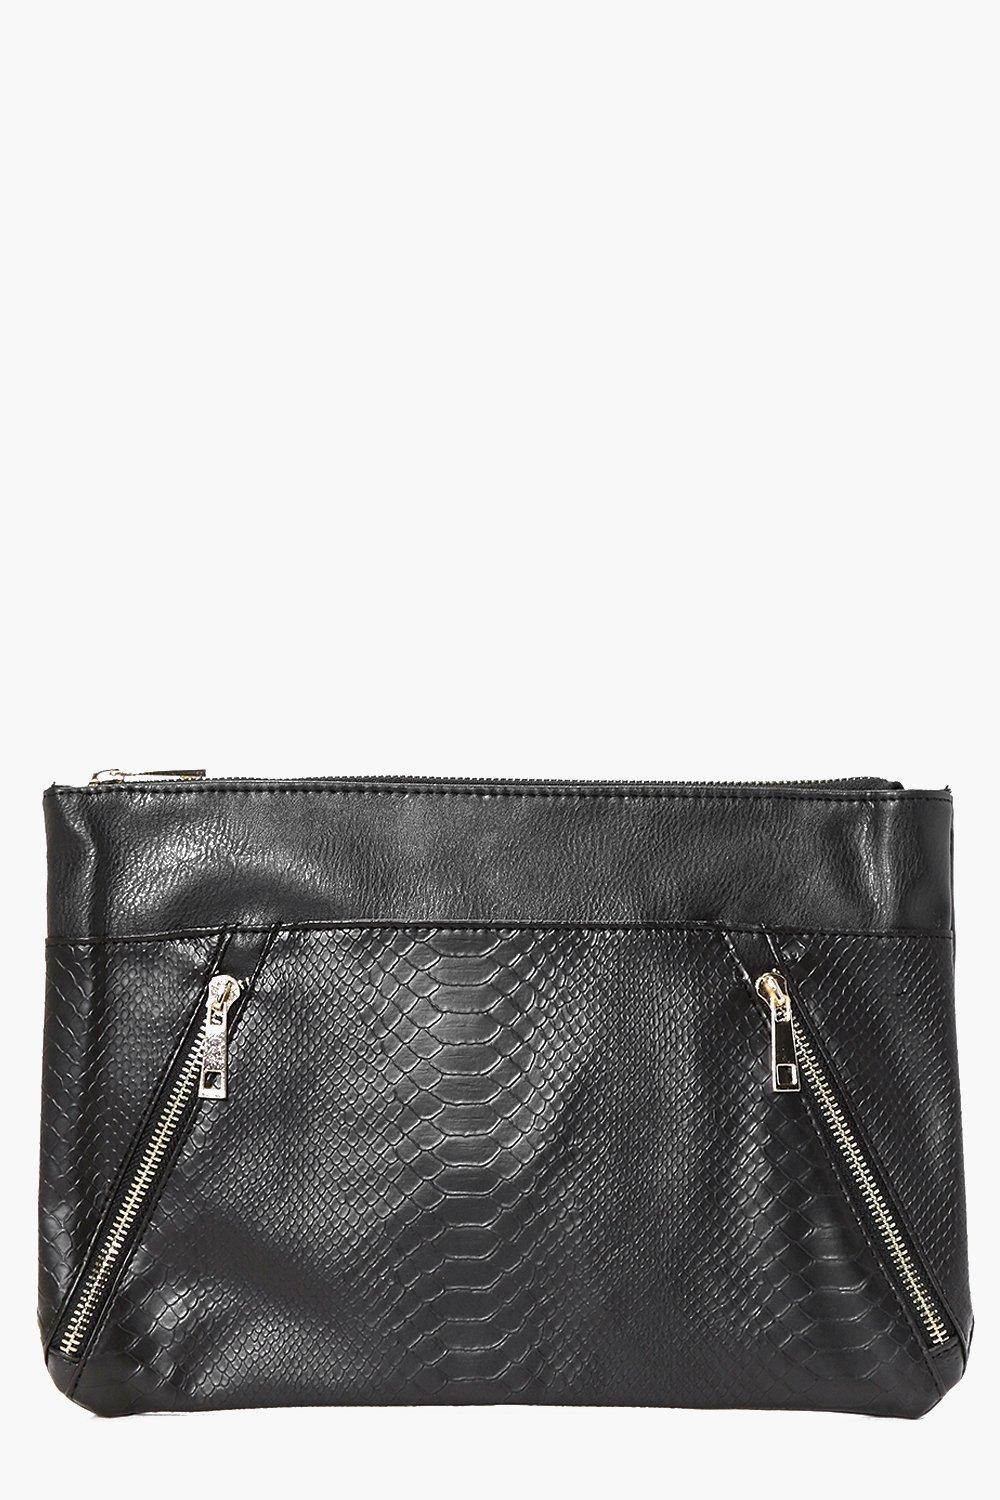 Zip Detail Contrast Panel Clutch Bag black